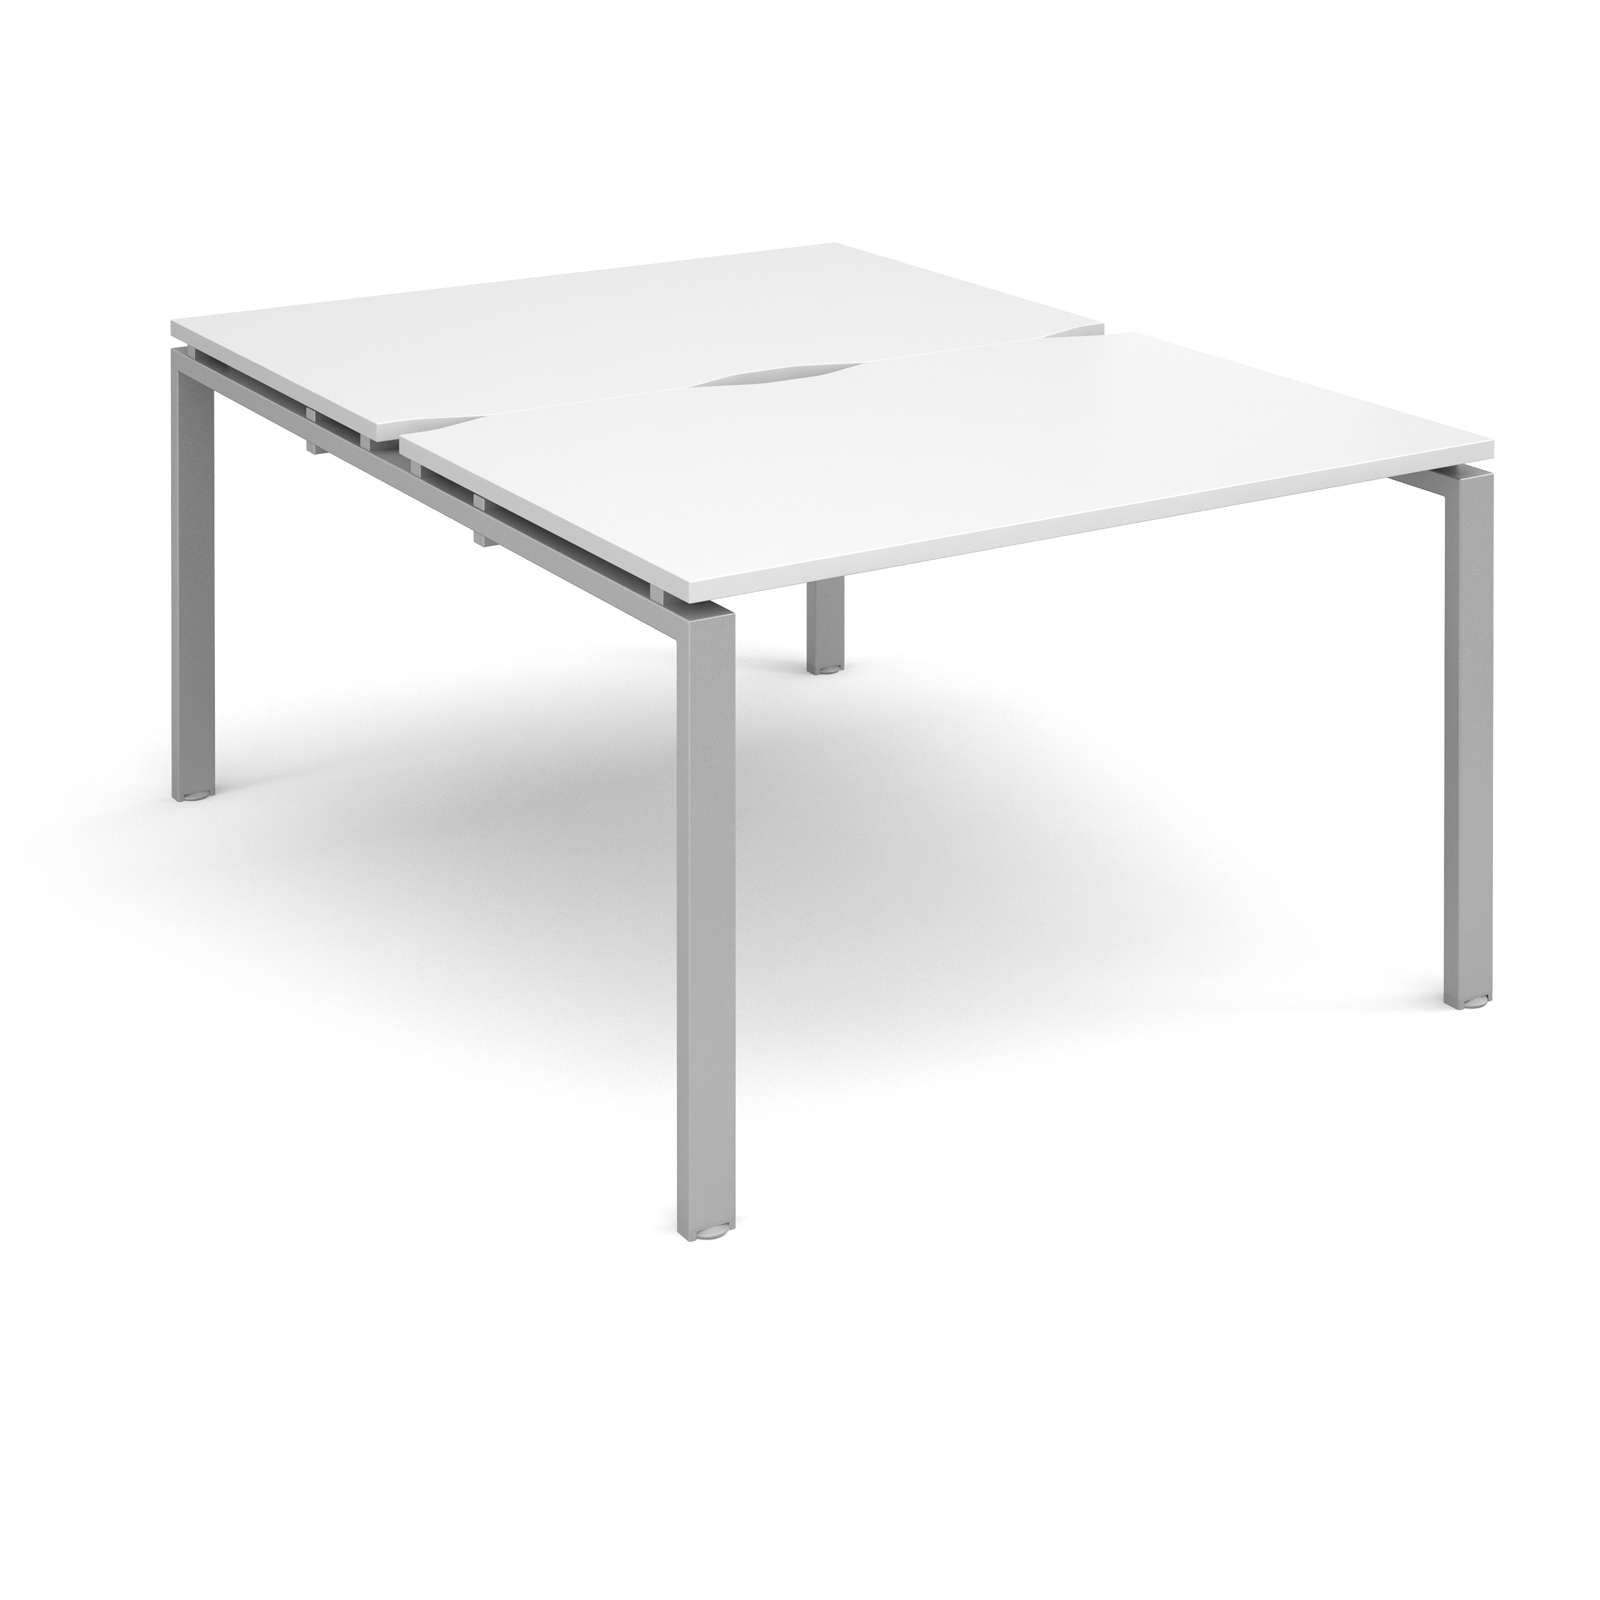 Adapt II 1200 x 1600 x 725mm Back to Back Desk - White / Silver Leg